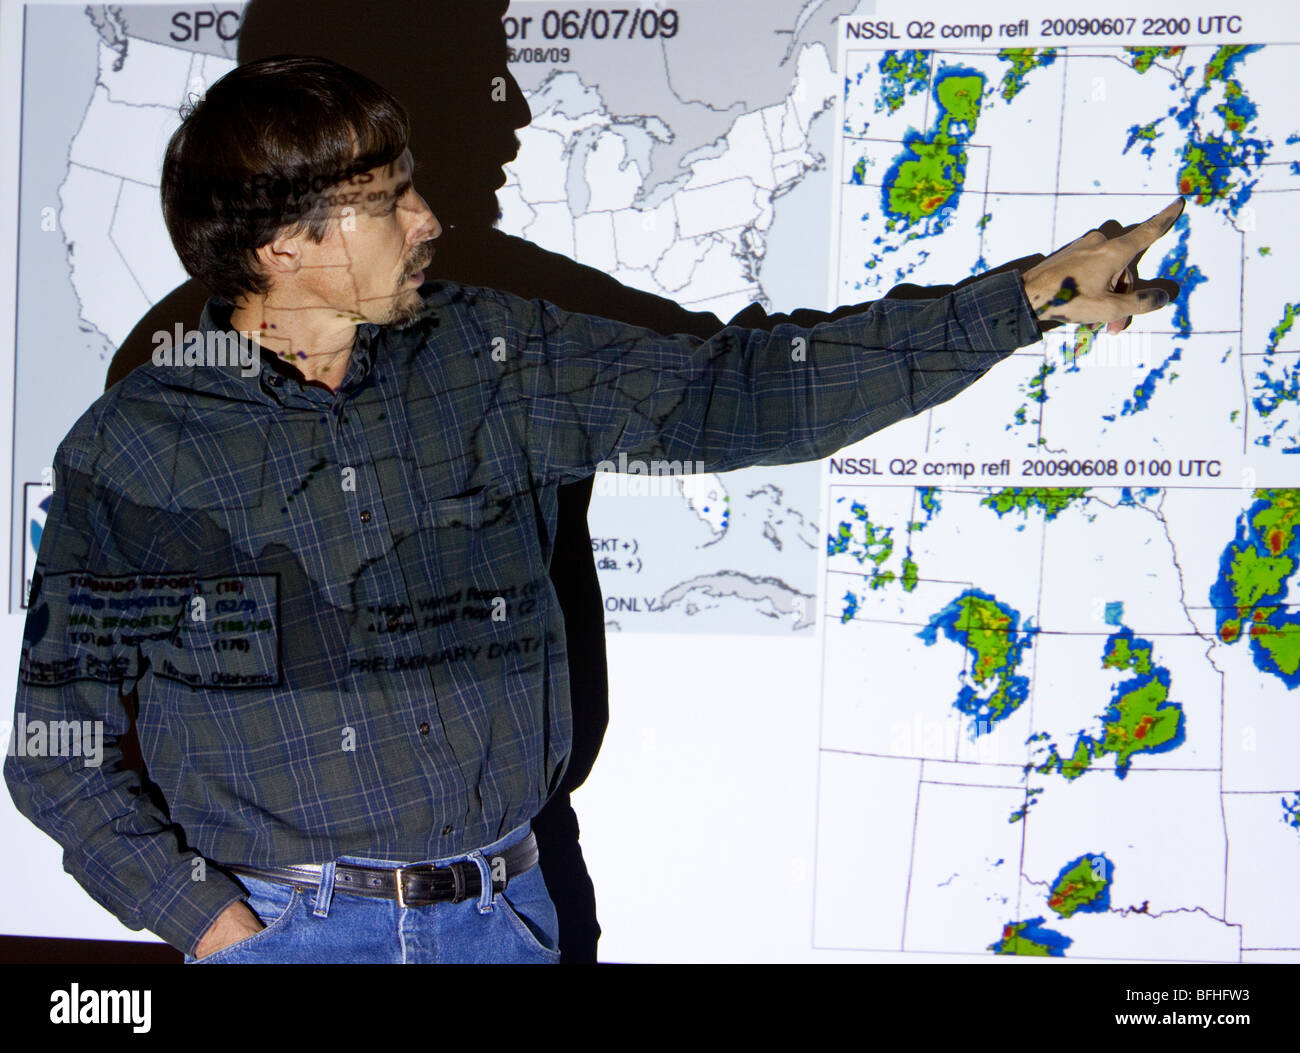 Doctor Eric Rasmussen points at a weather forcast map in Wichita, Kansas, USA, June 9, 2009 Stock Photo